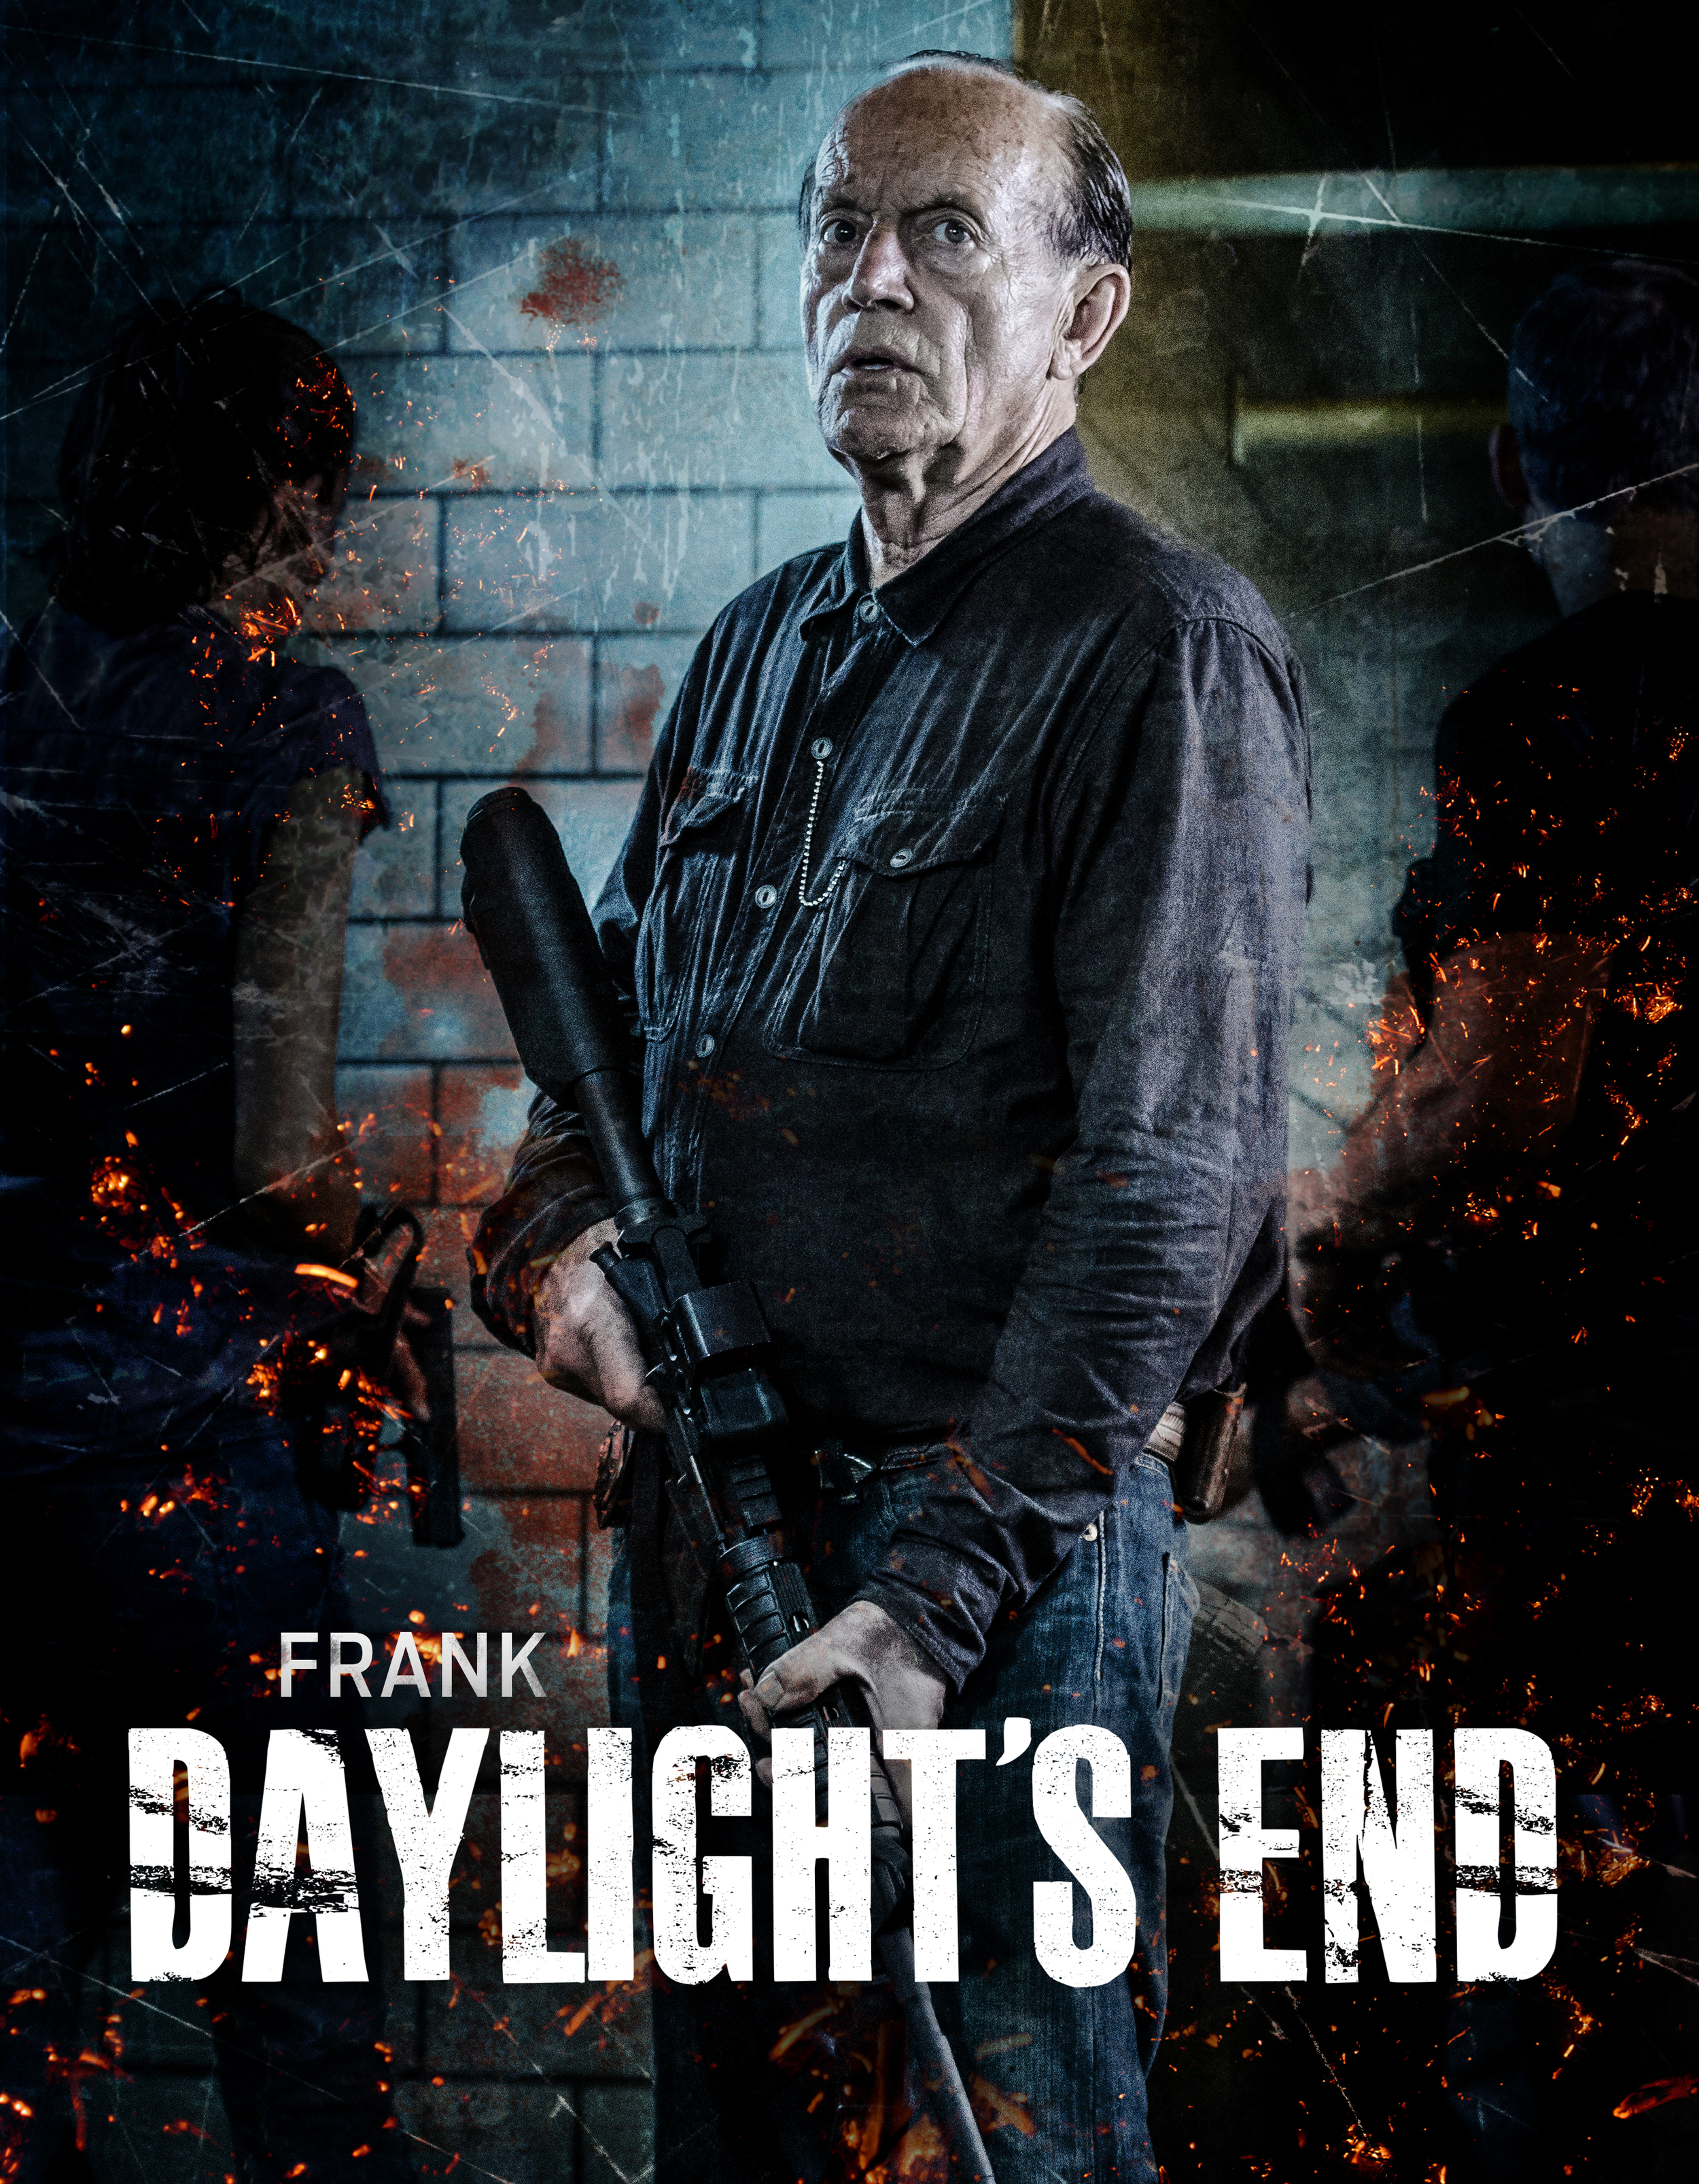 Played by:  LANCE HENRIKSEN